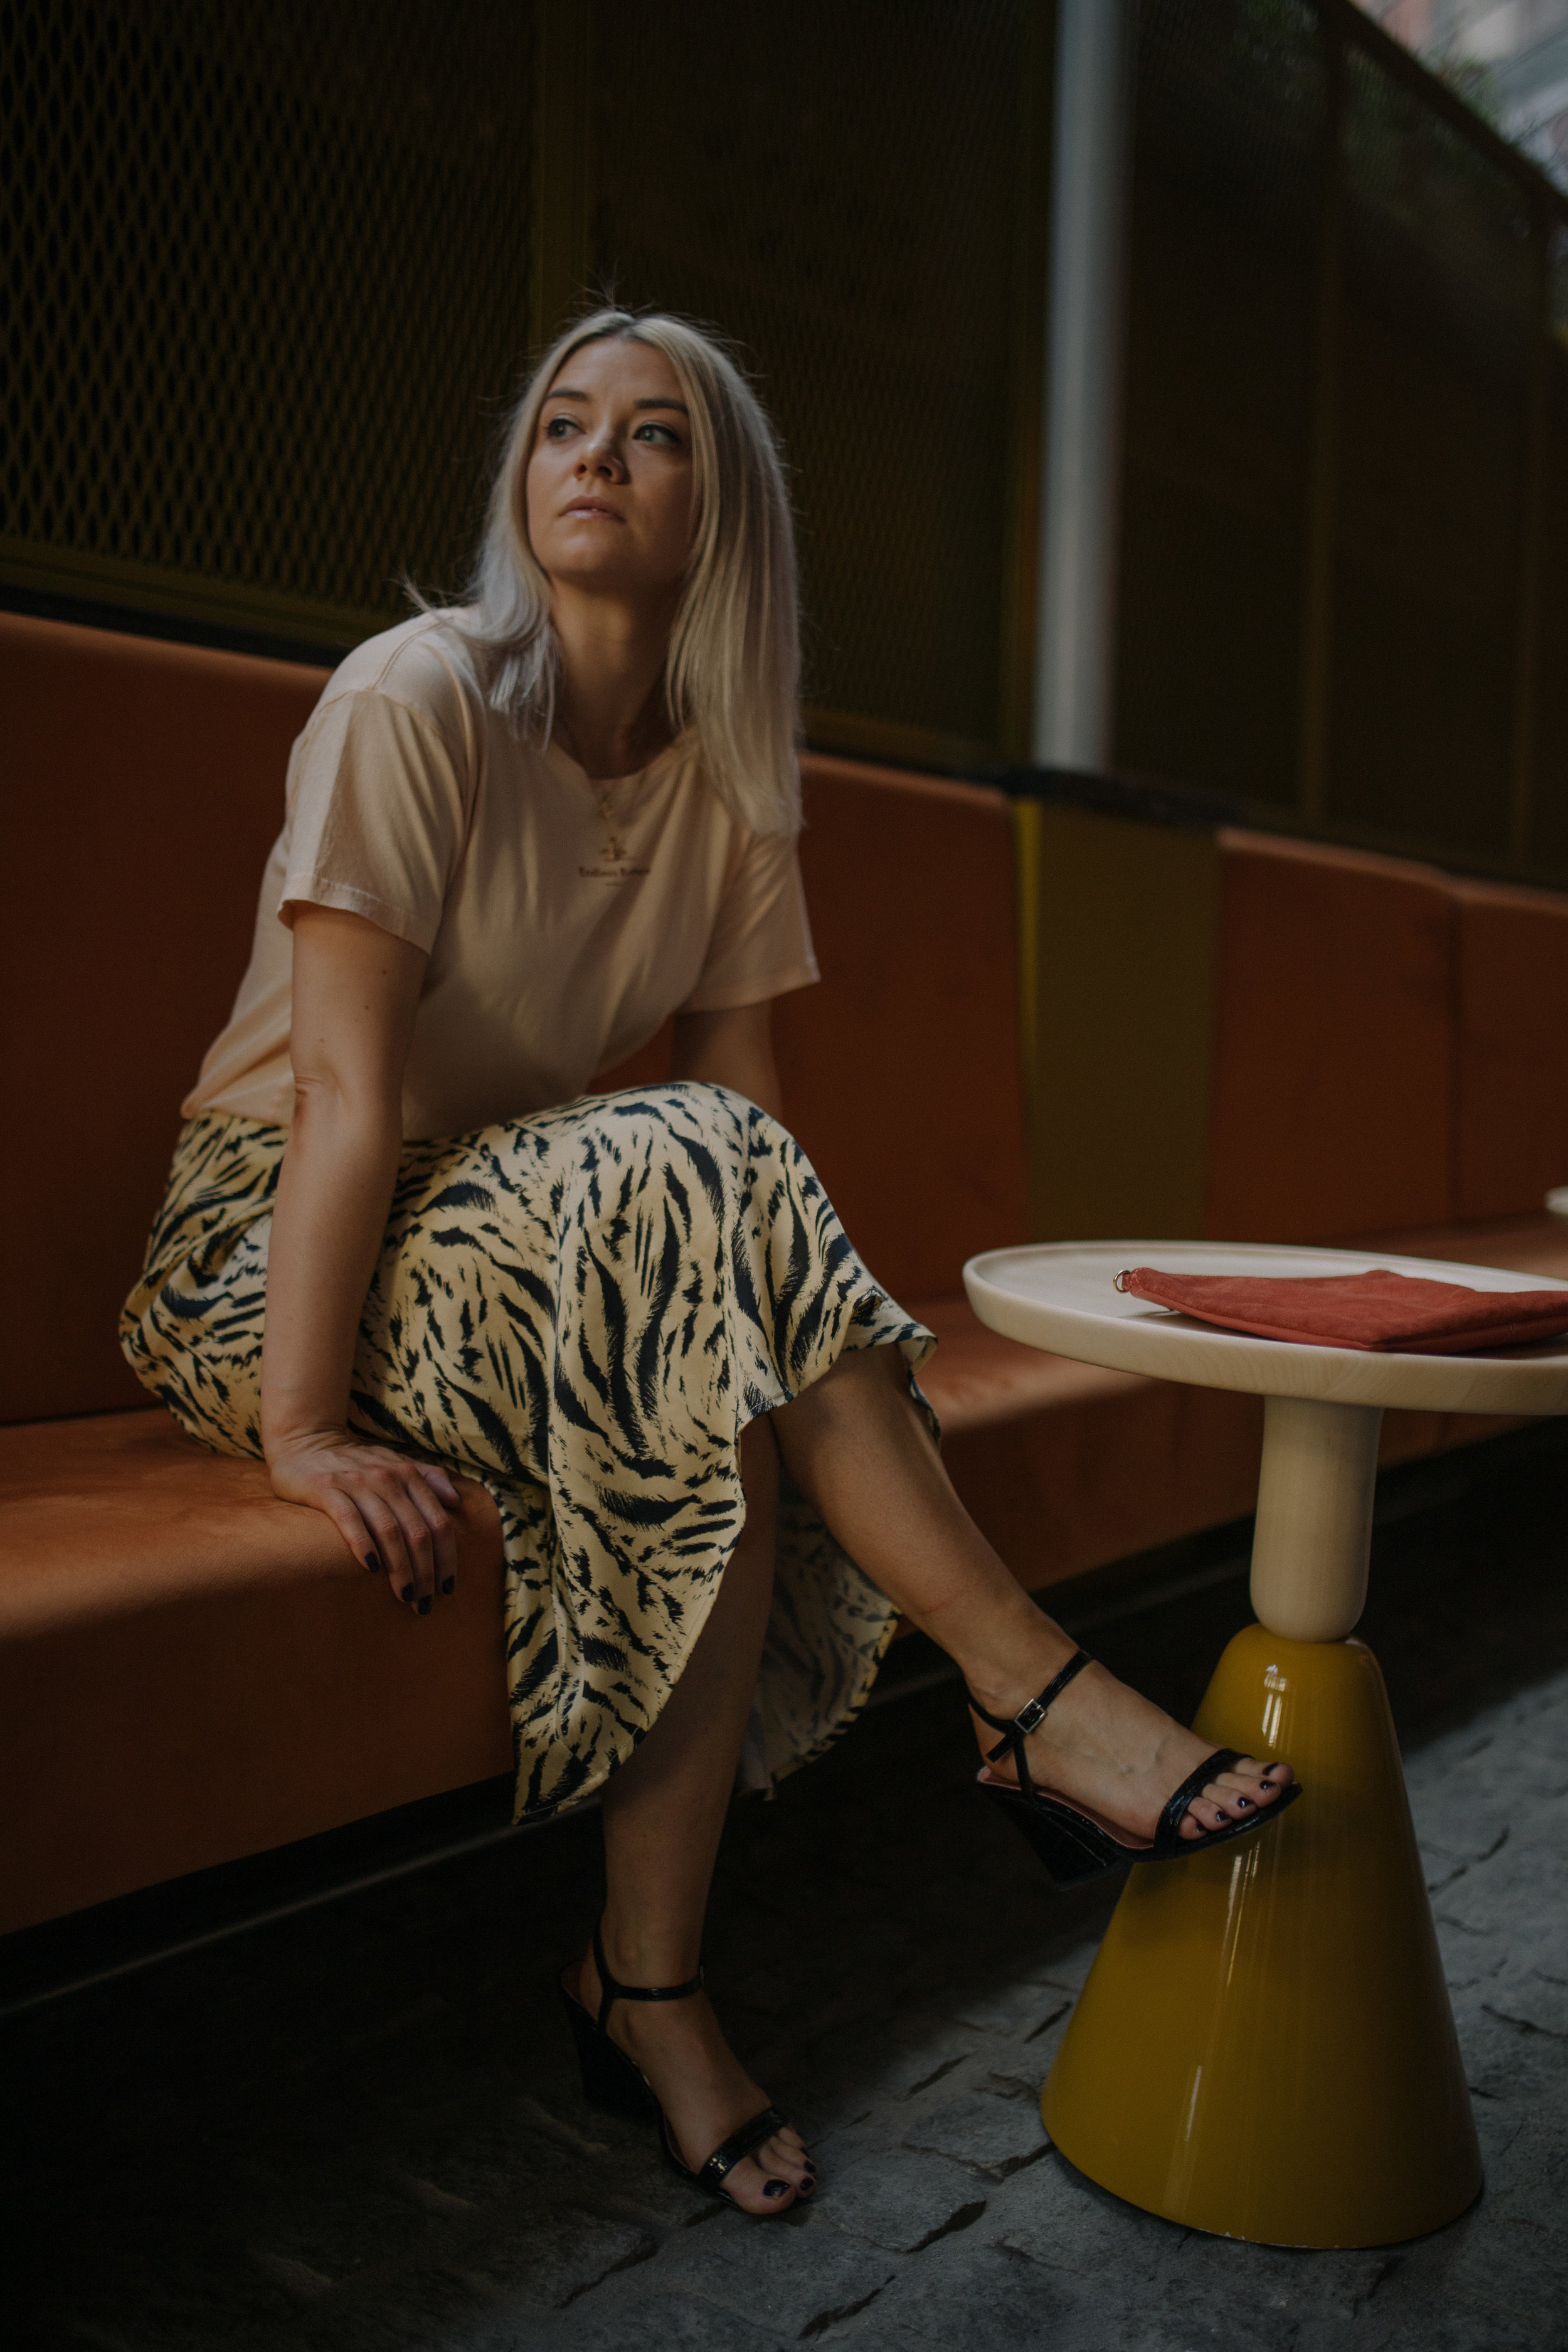 GIFTING INSTAGRAM, SCOTCH AND SODA T-SHIRT,  ANIMAL MIDI SKIRT, H&M SATIN SKIRT, NORTHERN MAGPIE, JOEY TAYLOR, TOPSHOP HEELS 2